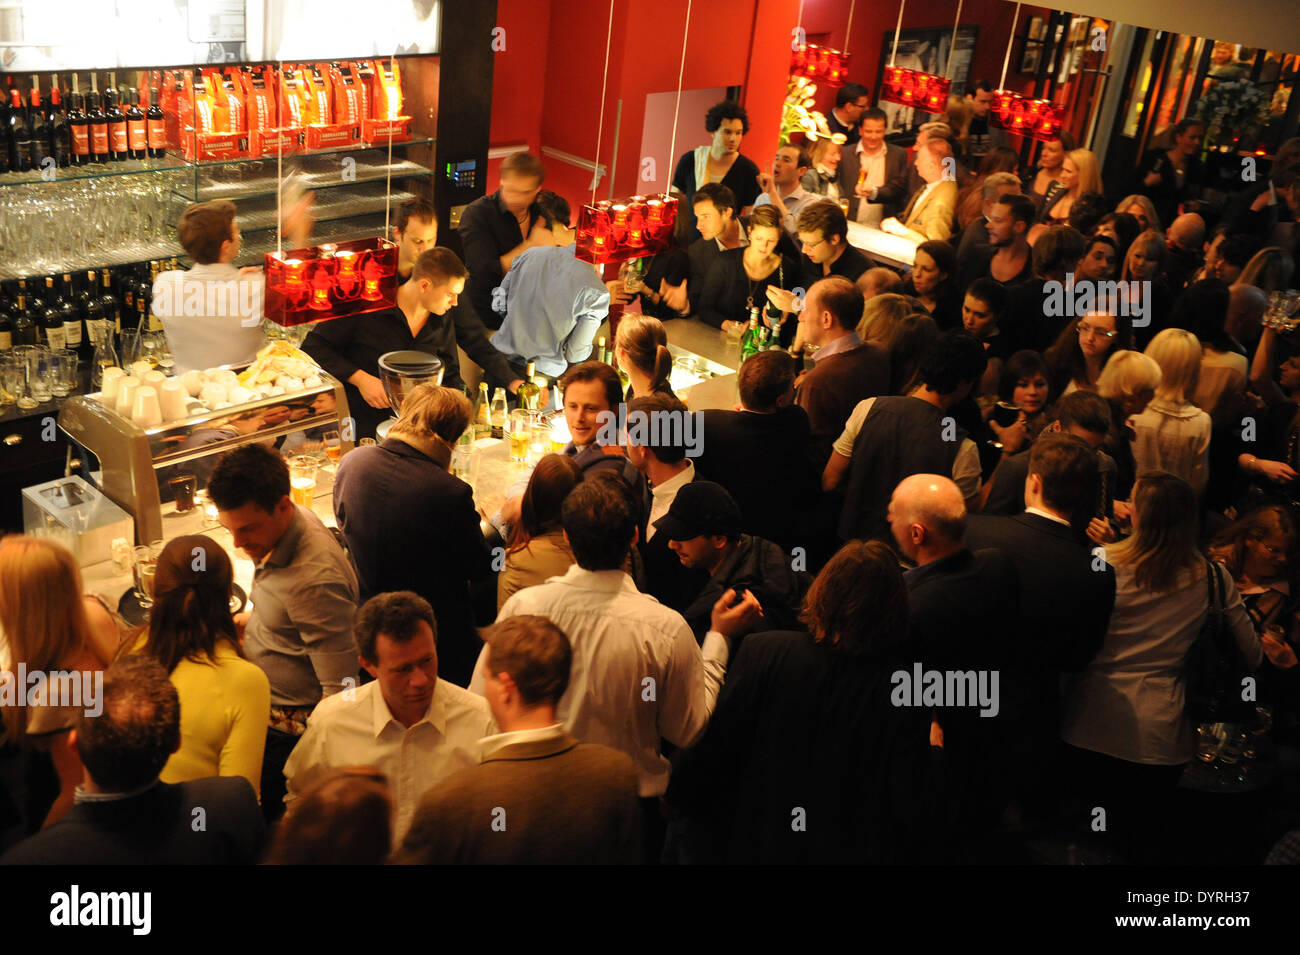 The opening of the L'Osteria in Munich, 2011 - Stock Image